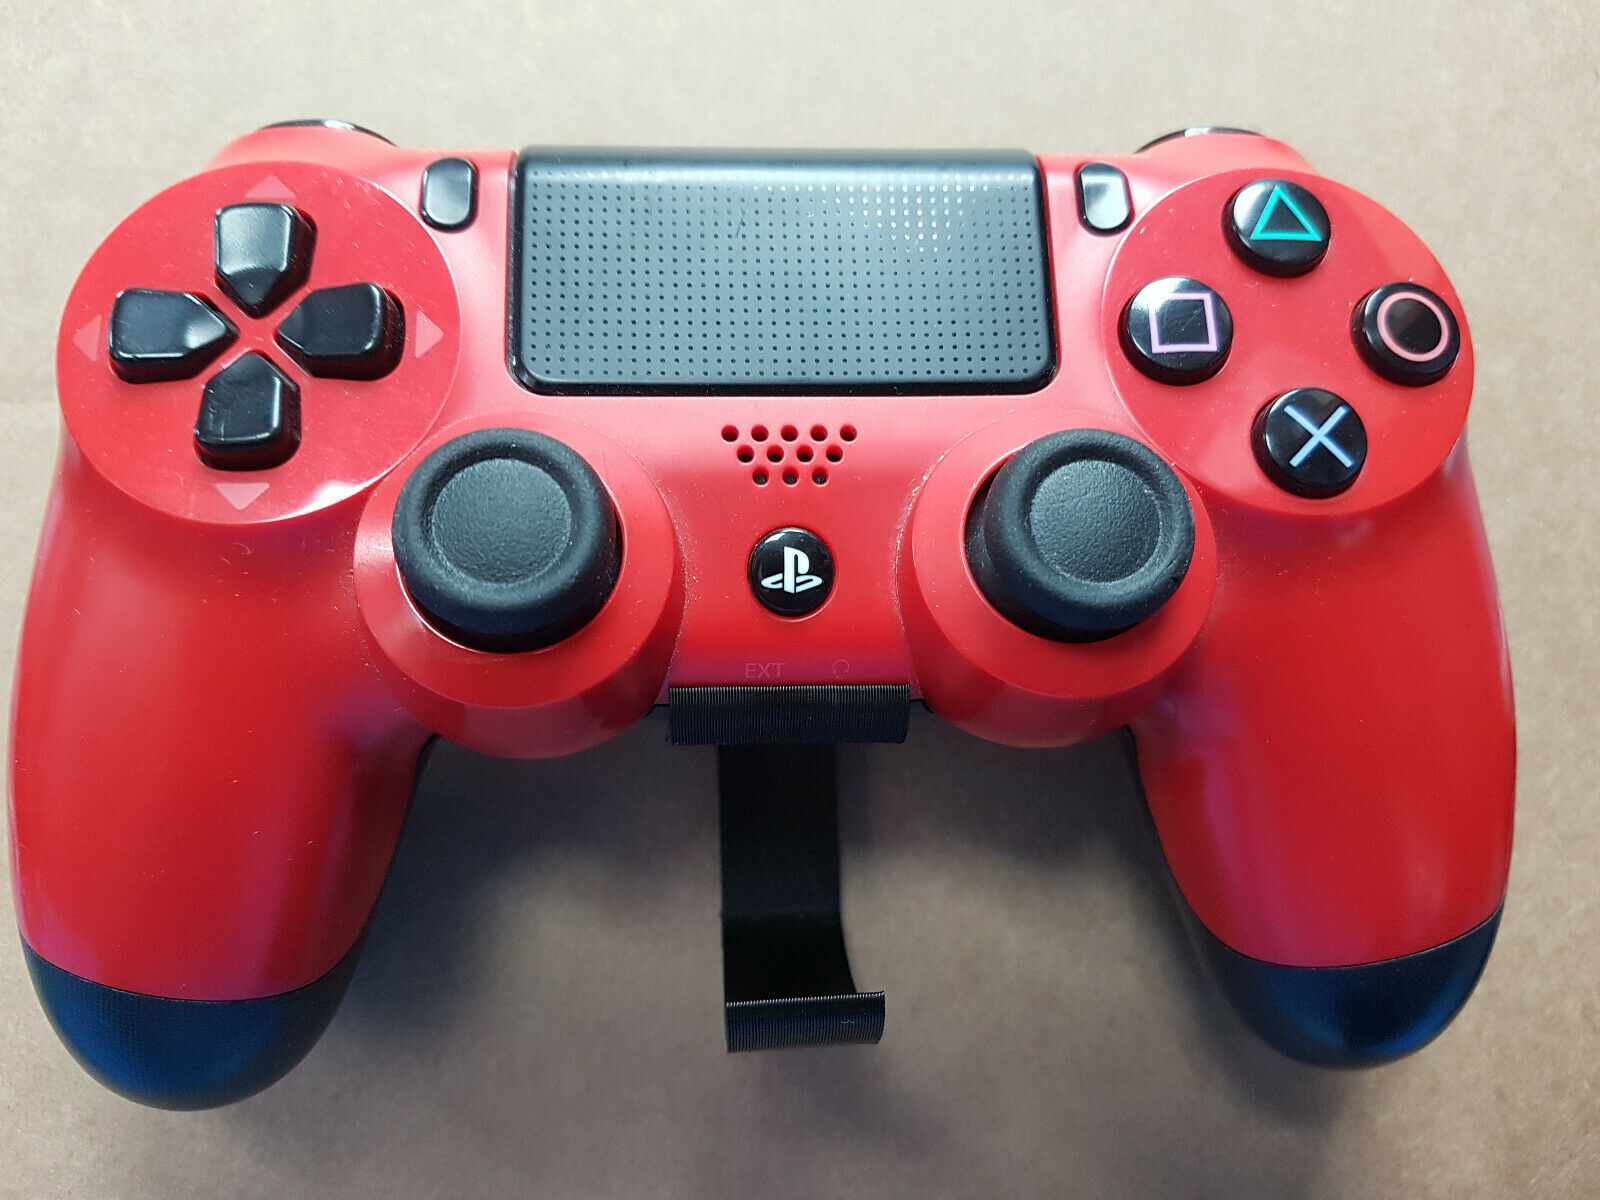 Playstation 4 / PS4 Controller and Headphone Floating Wall Mount Holder Stand